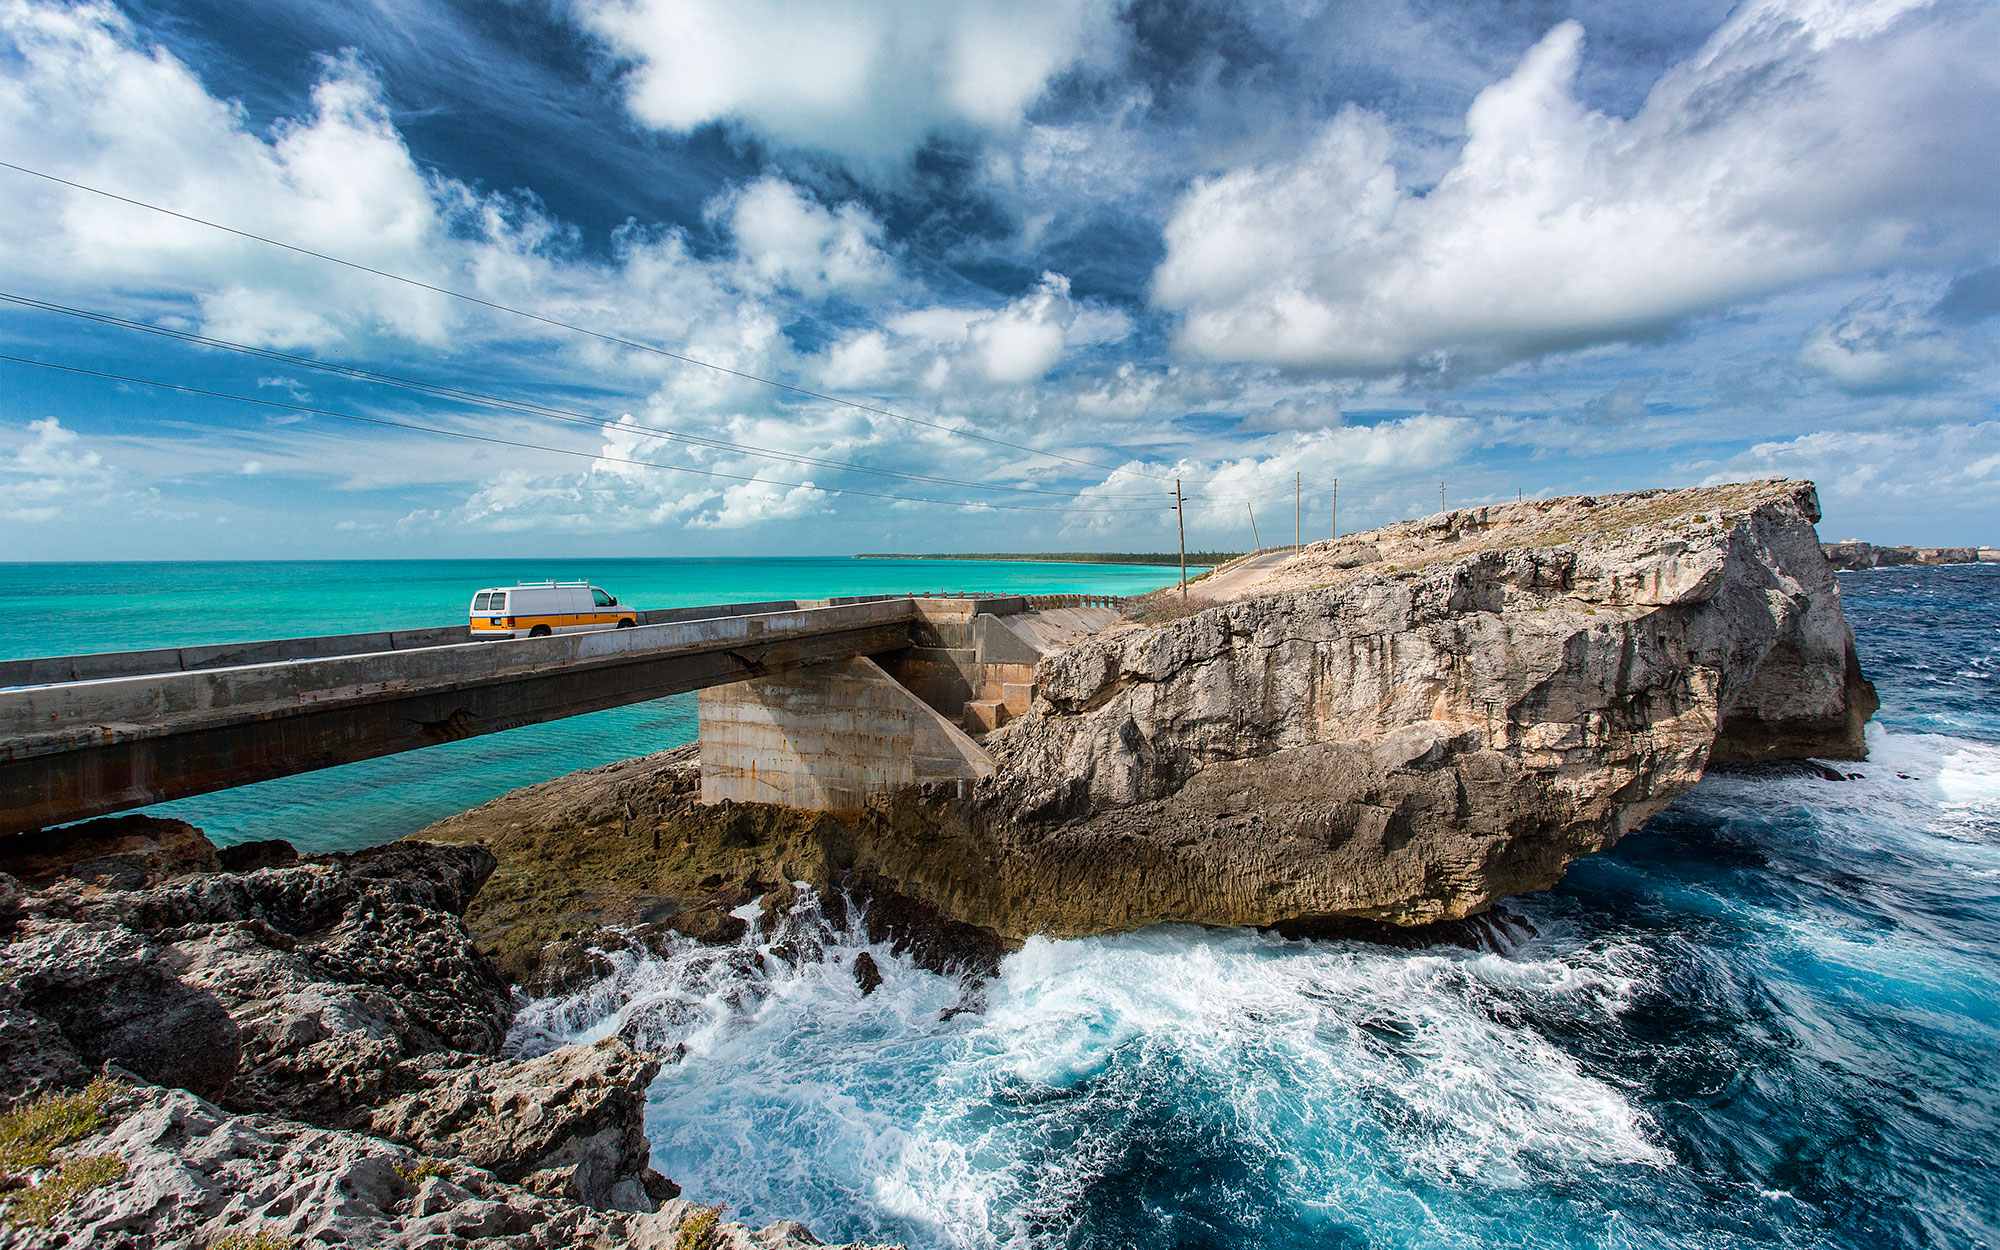 Bahamas, Eleuthera Island, The Glass Window Bridge